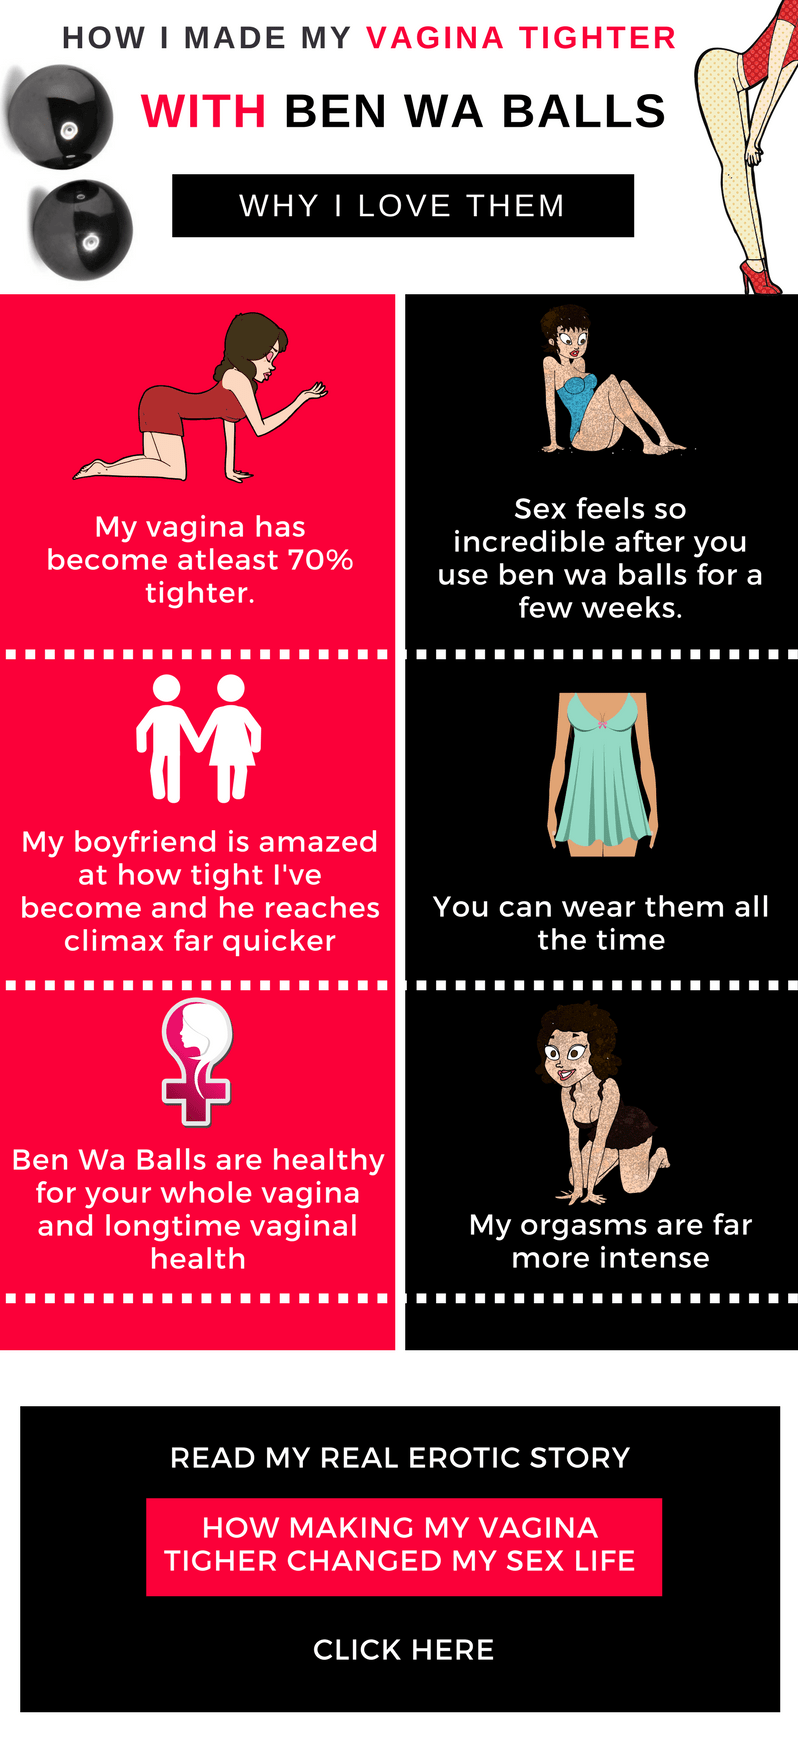 infographic about getting a tighter vagina